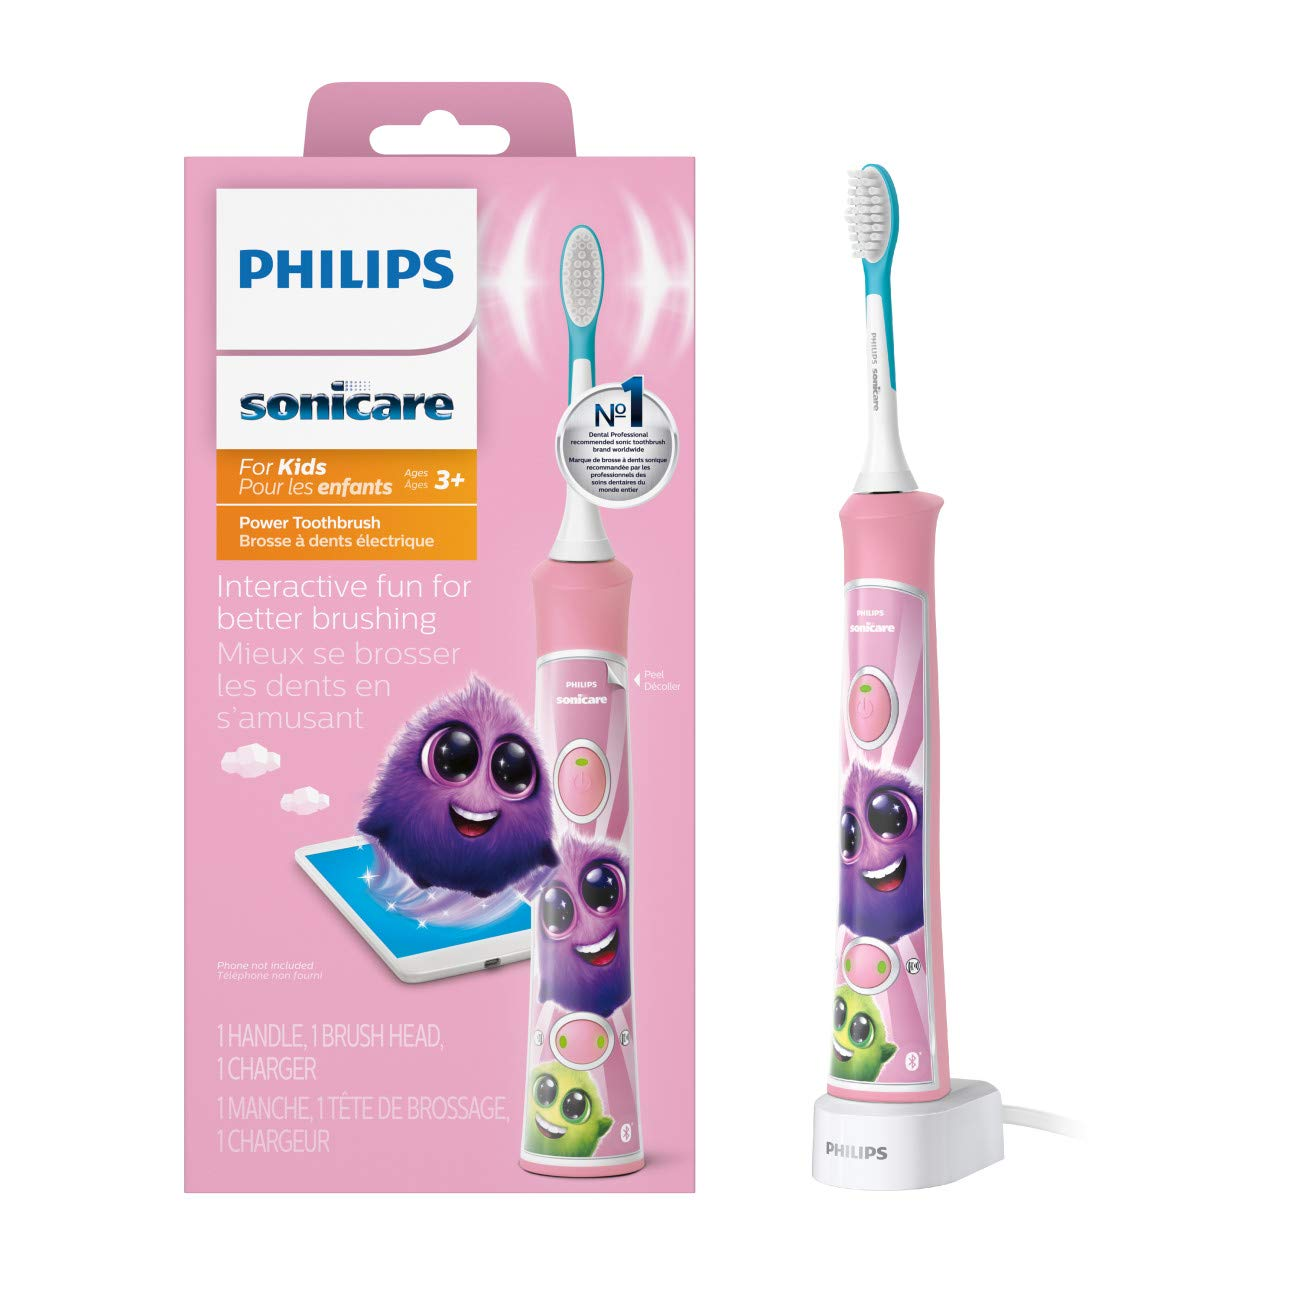 Philips Sonicare for Kids Rechargeable Electric Toothbrush, Pink HX6351 41